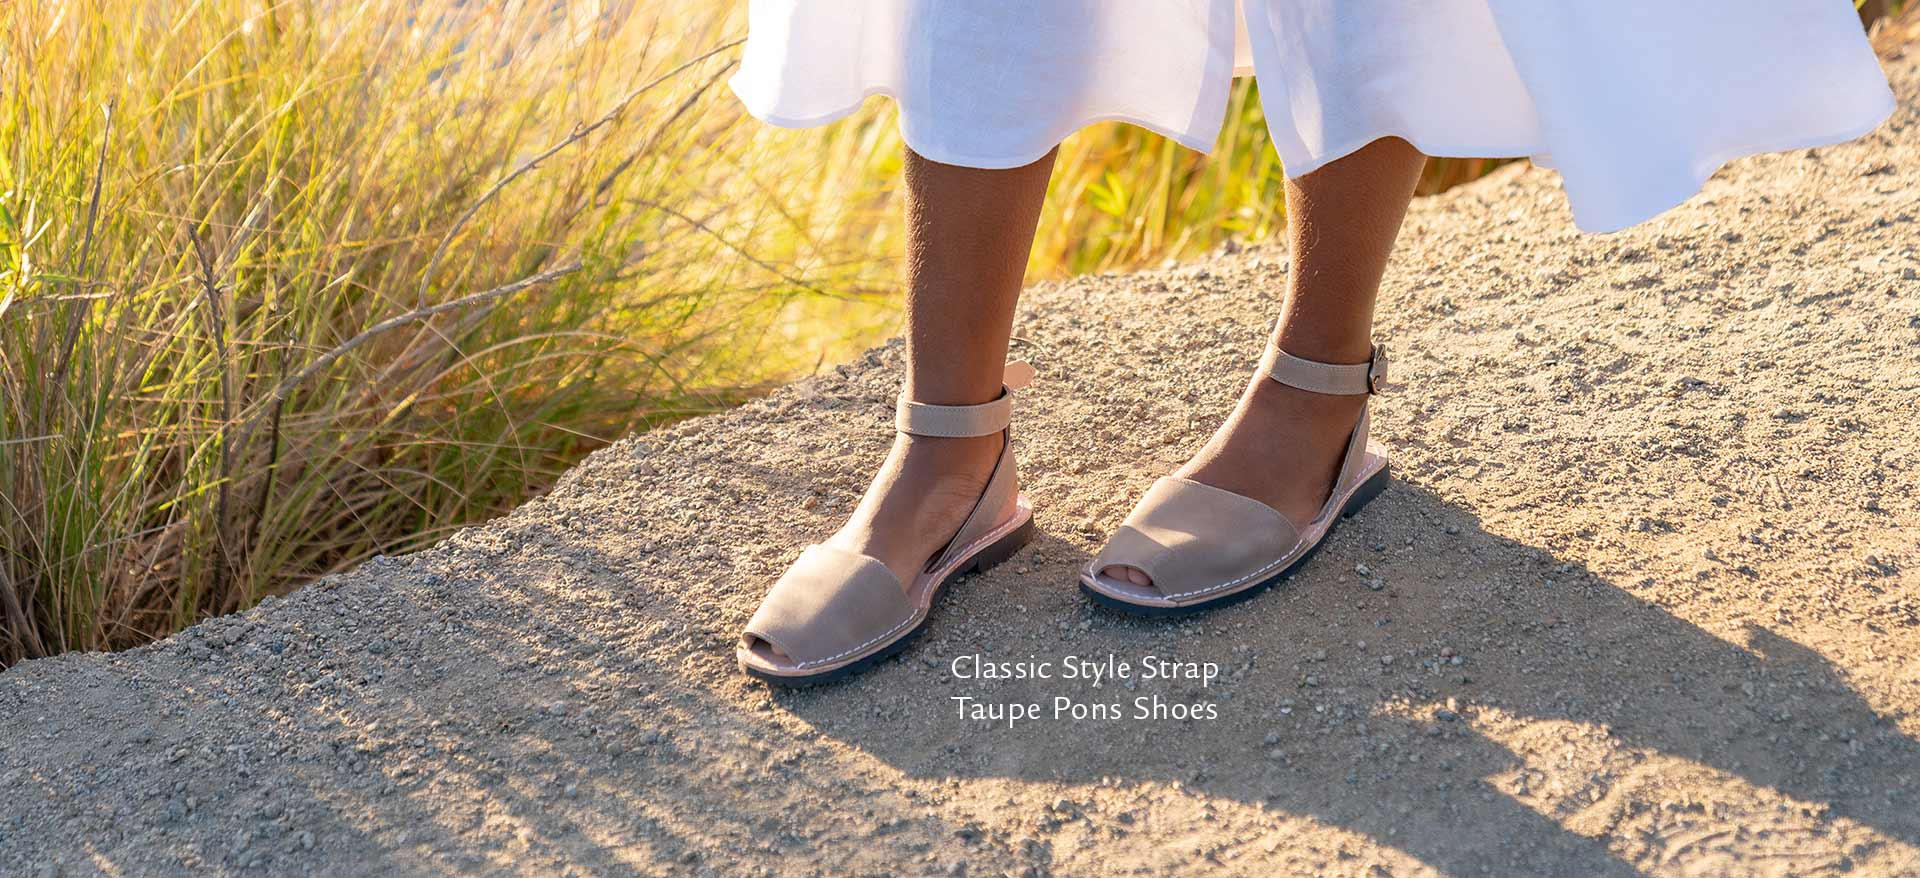 Classic Strap Taupe Pons Shoes